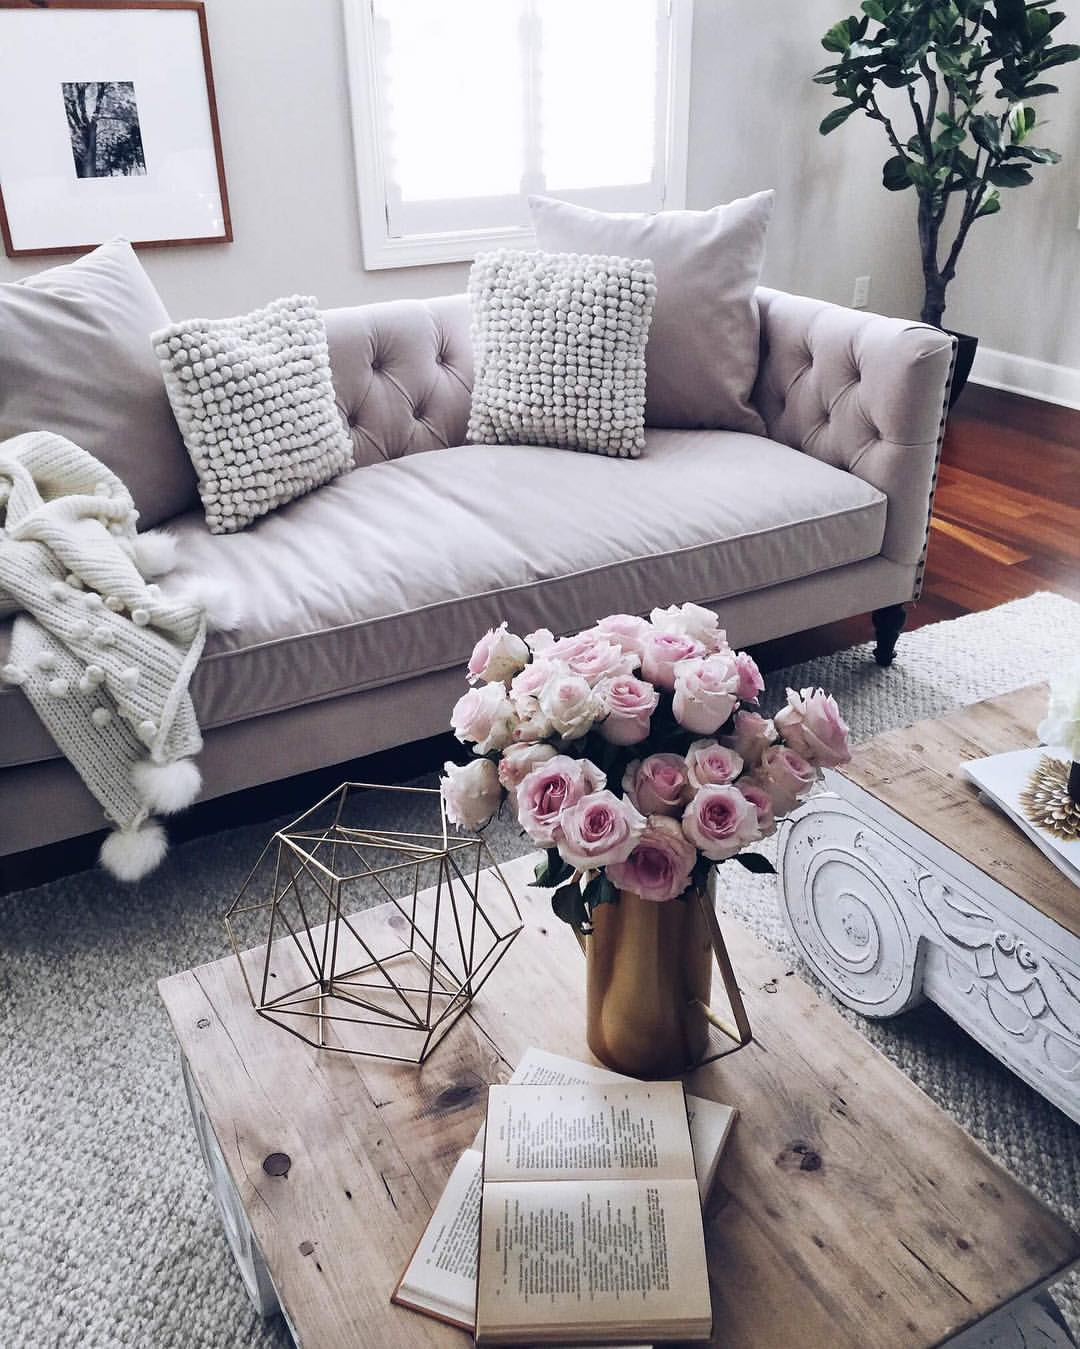 Home Decor Inspiration Sur Instagram Black And White: Romantic Living Rooms Ideas